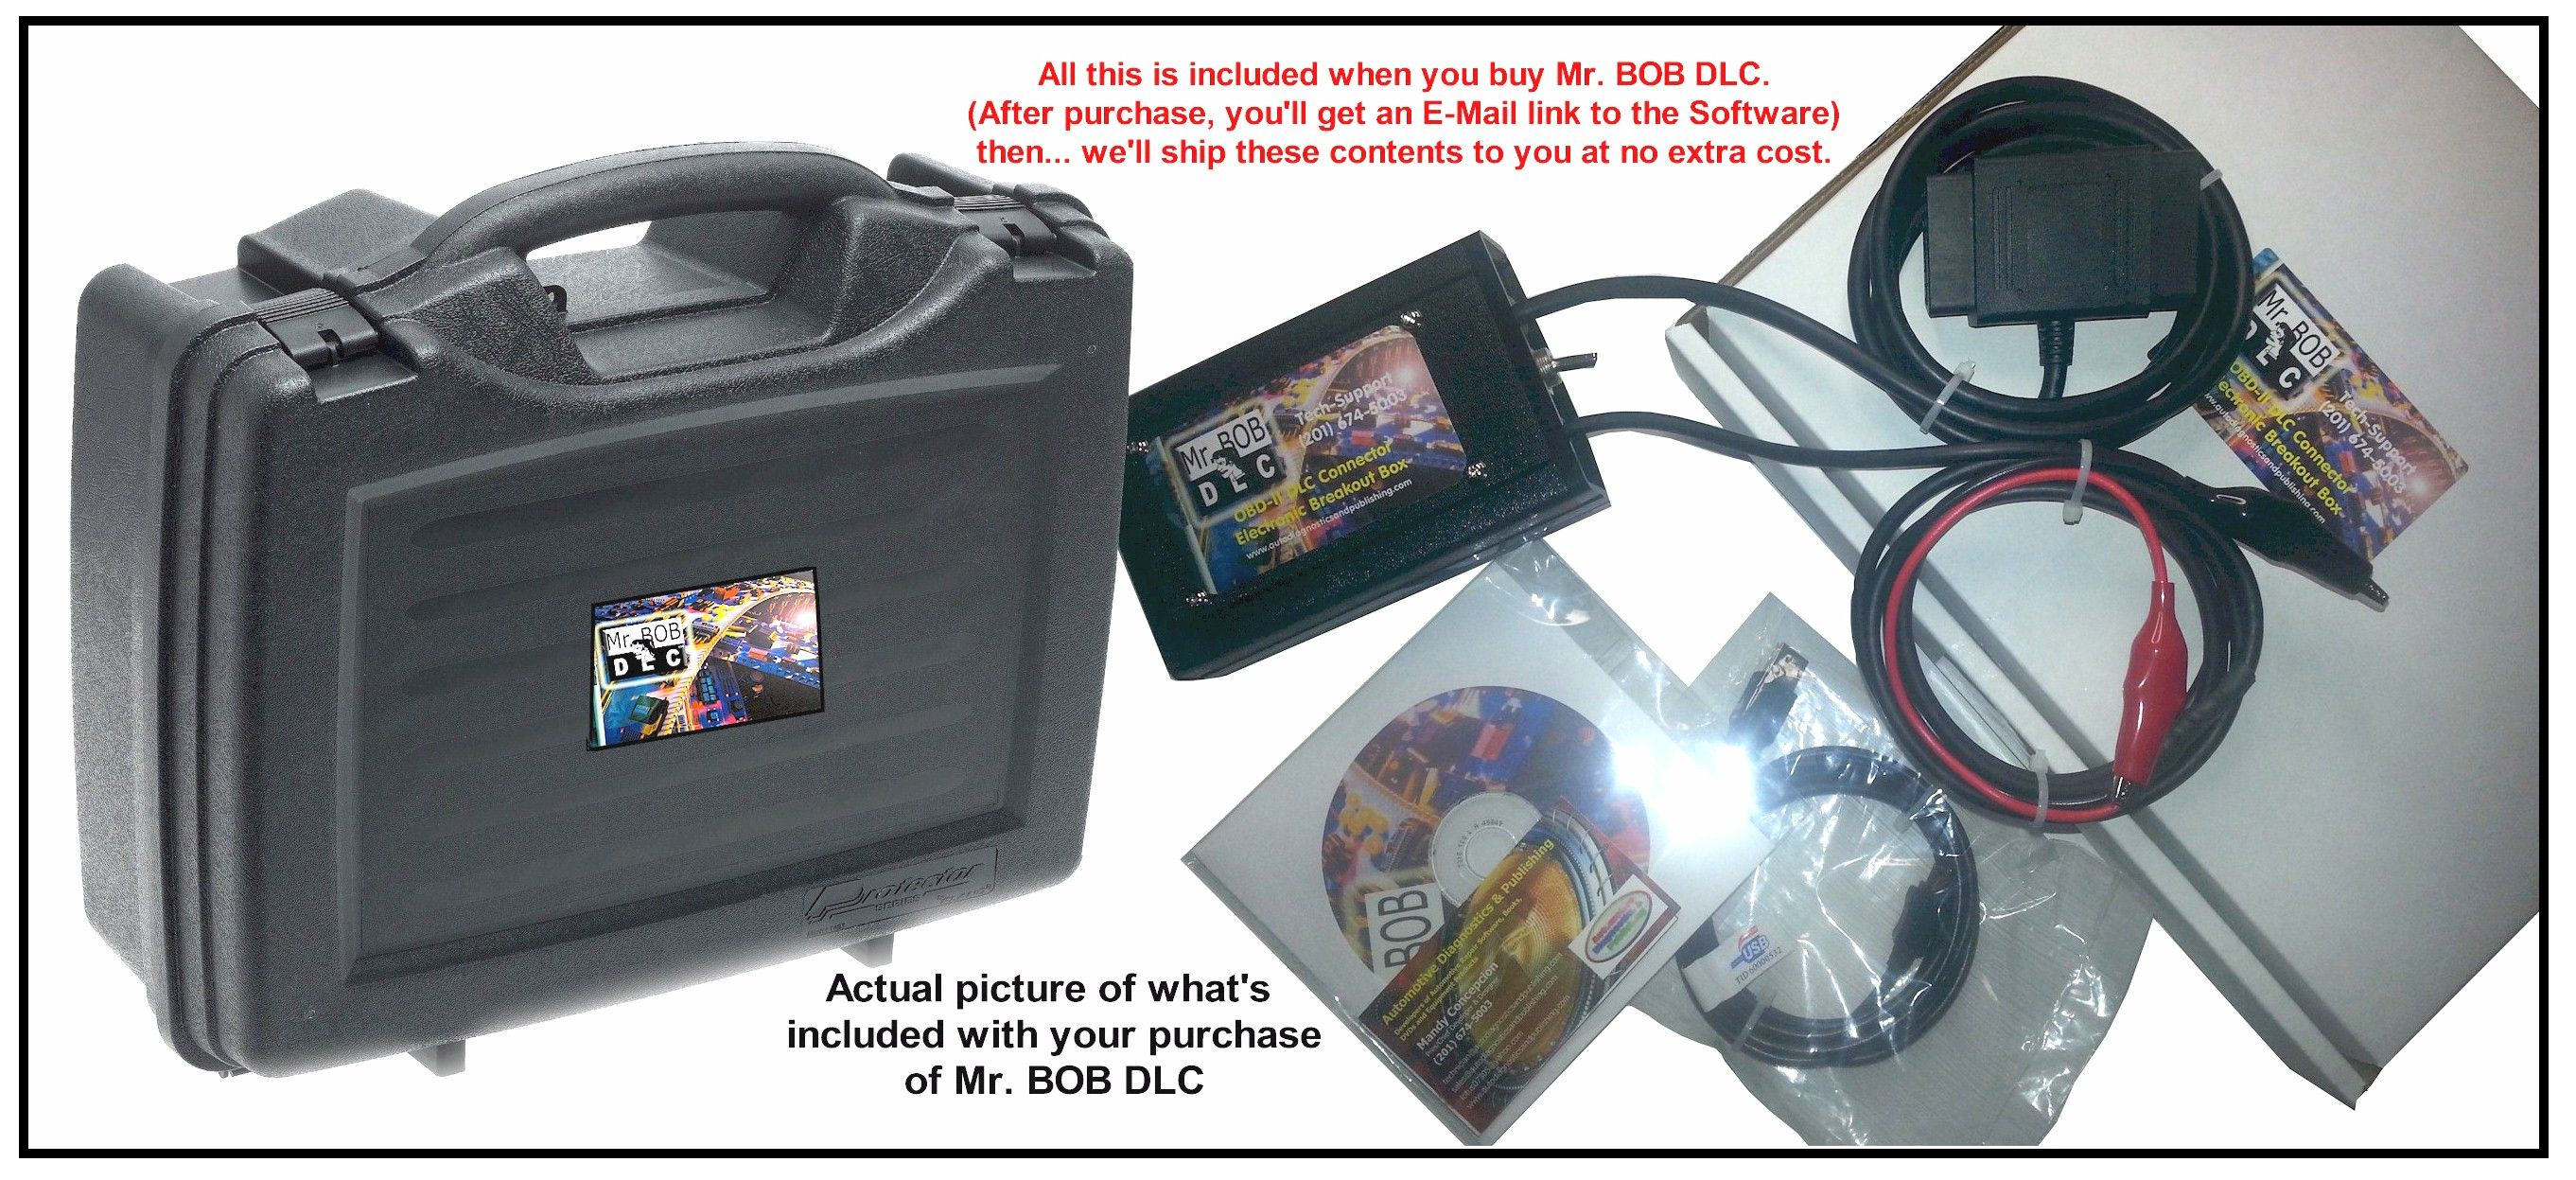 Mr. BOB DLC OBDII Data Link Connector Diagnostics